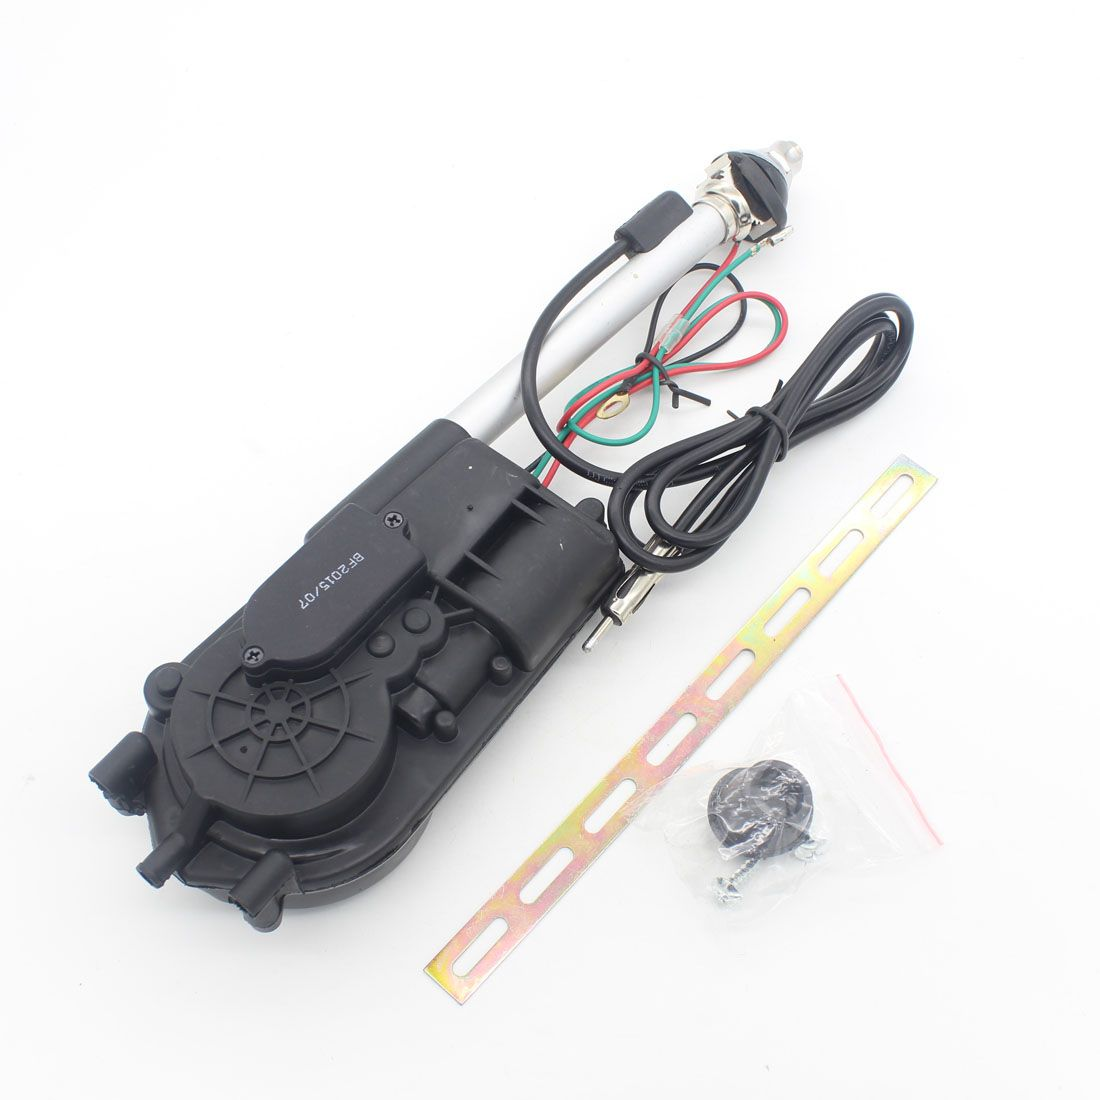 1X Universal Auto Car Aerial Antena Electric Radio Antenna Automatic Booster SUV Electric Power 12V FM/AM Retractable Antenna